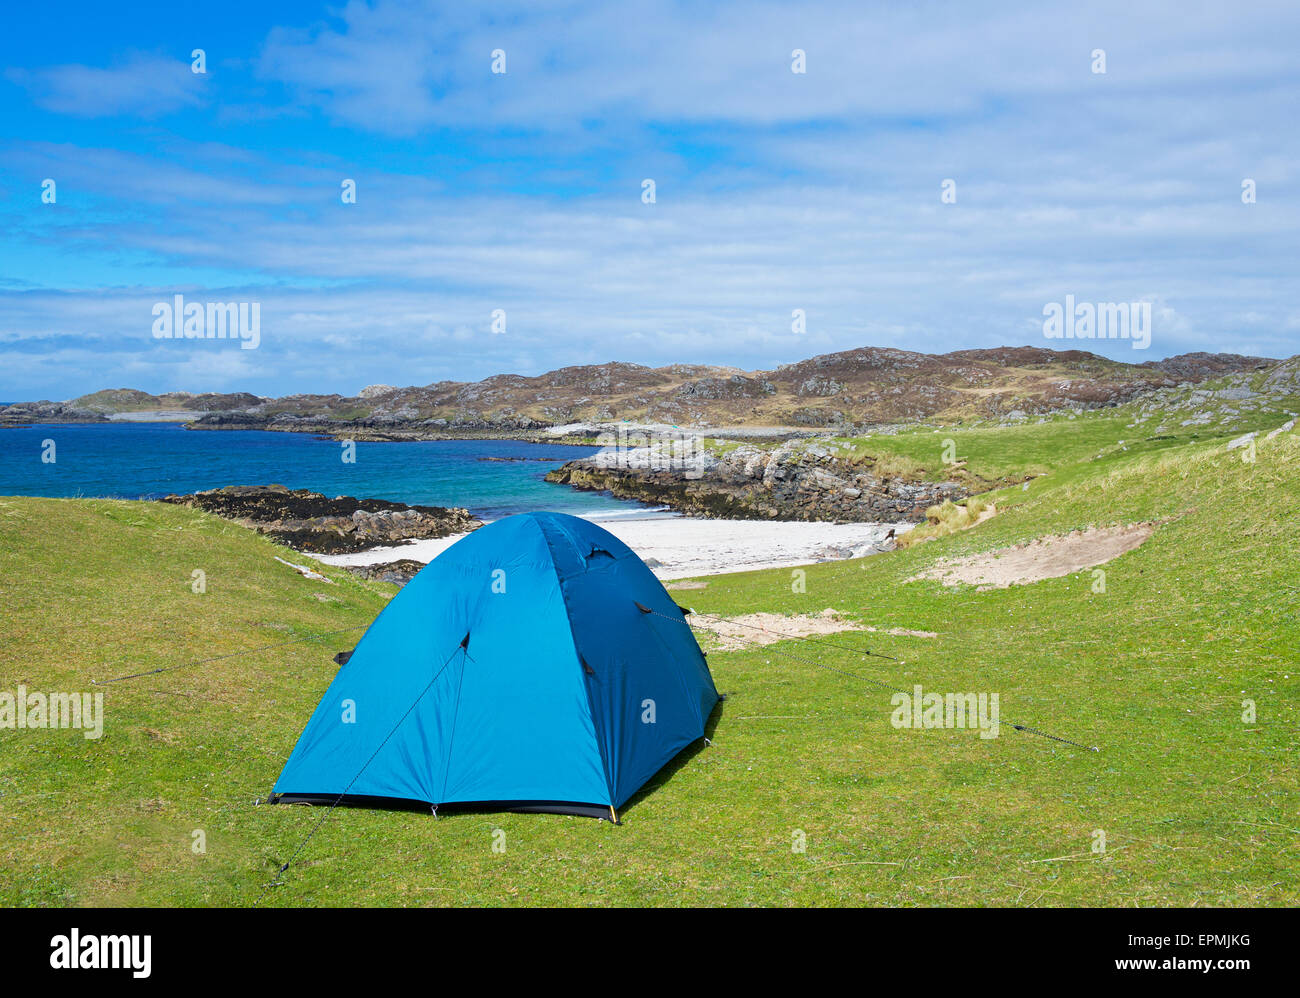 Wild camping on the Hebridean Island of Bernera, Outer Hebrides, Scotland UK - Stock Image